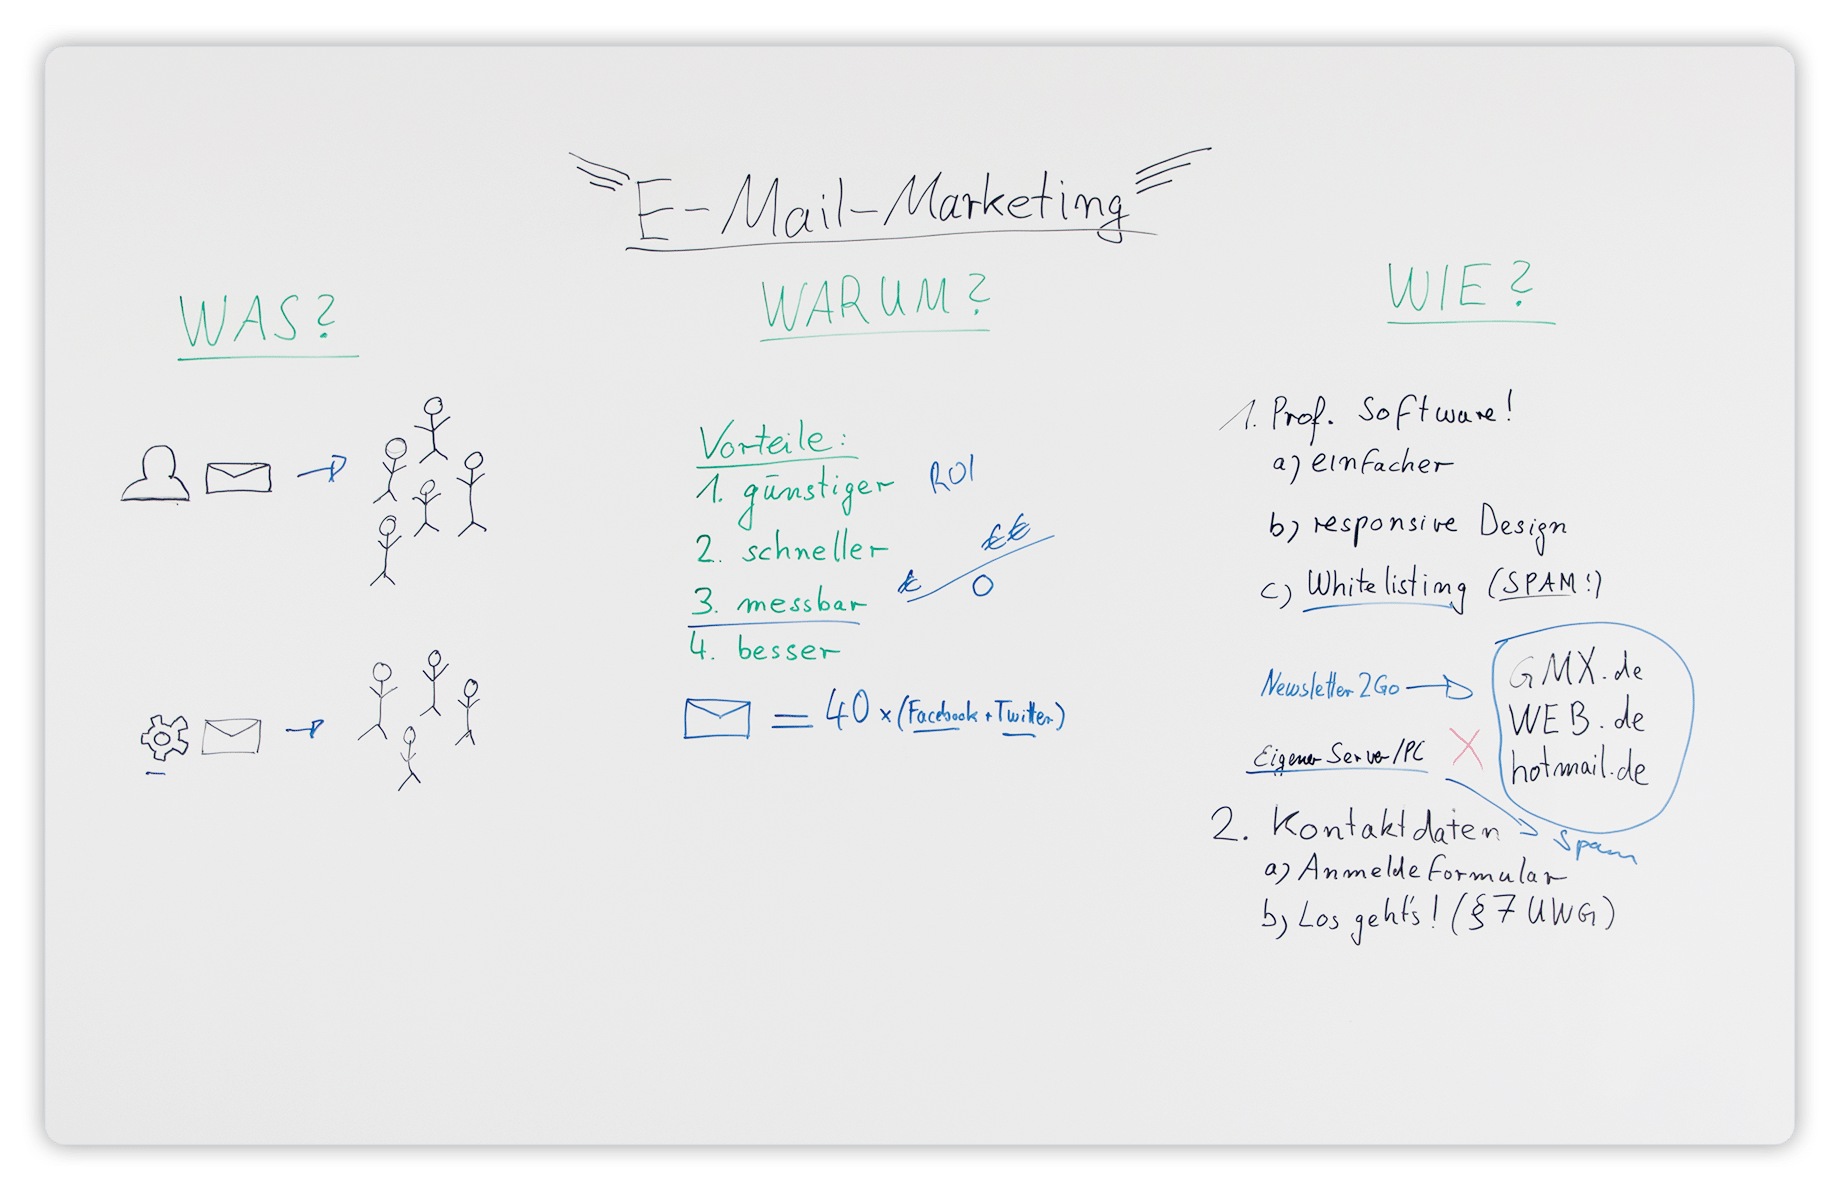 01_Whiteboard_E-Mail Marketing Grundlagen